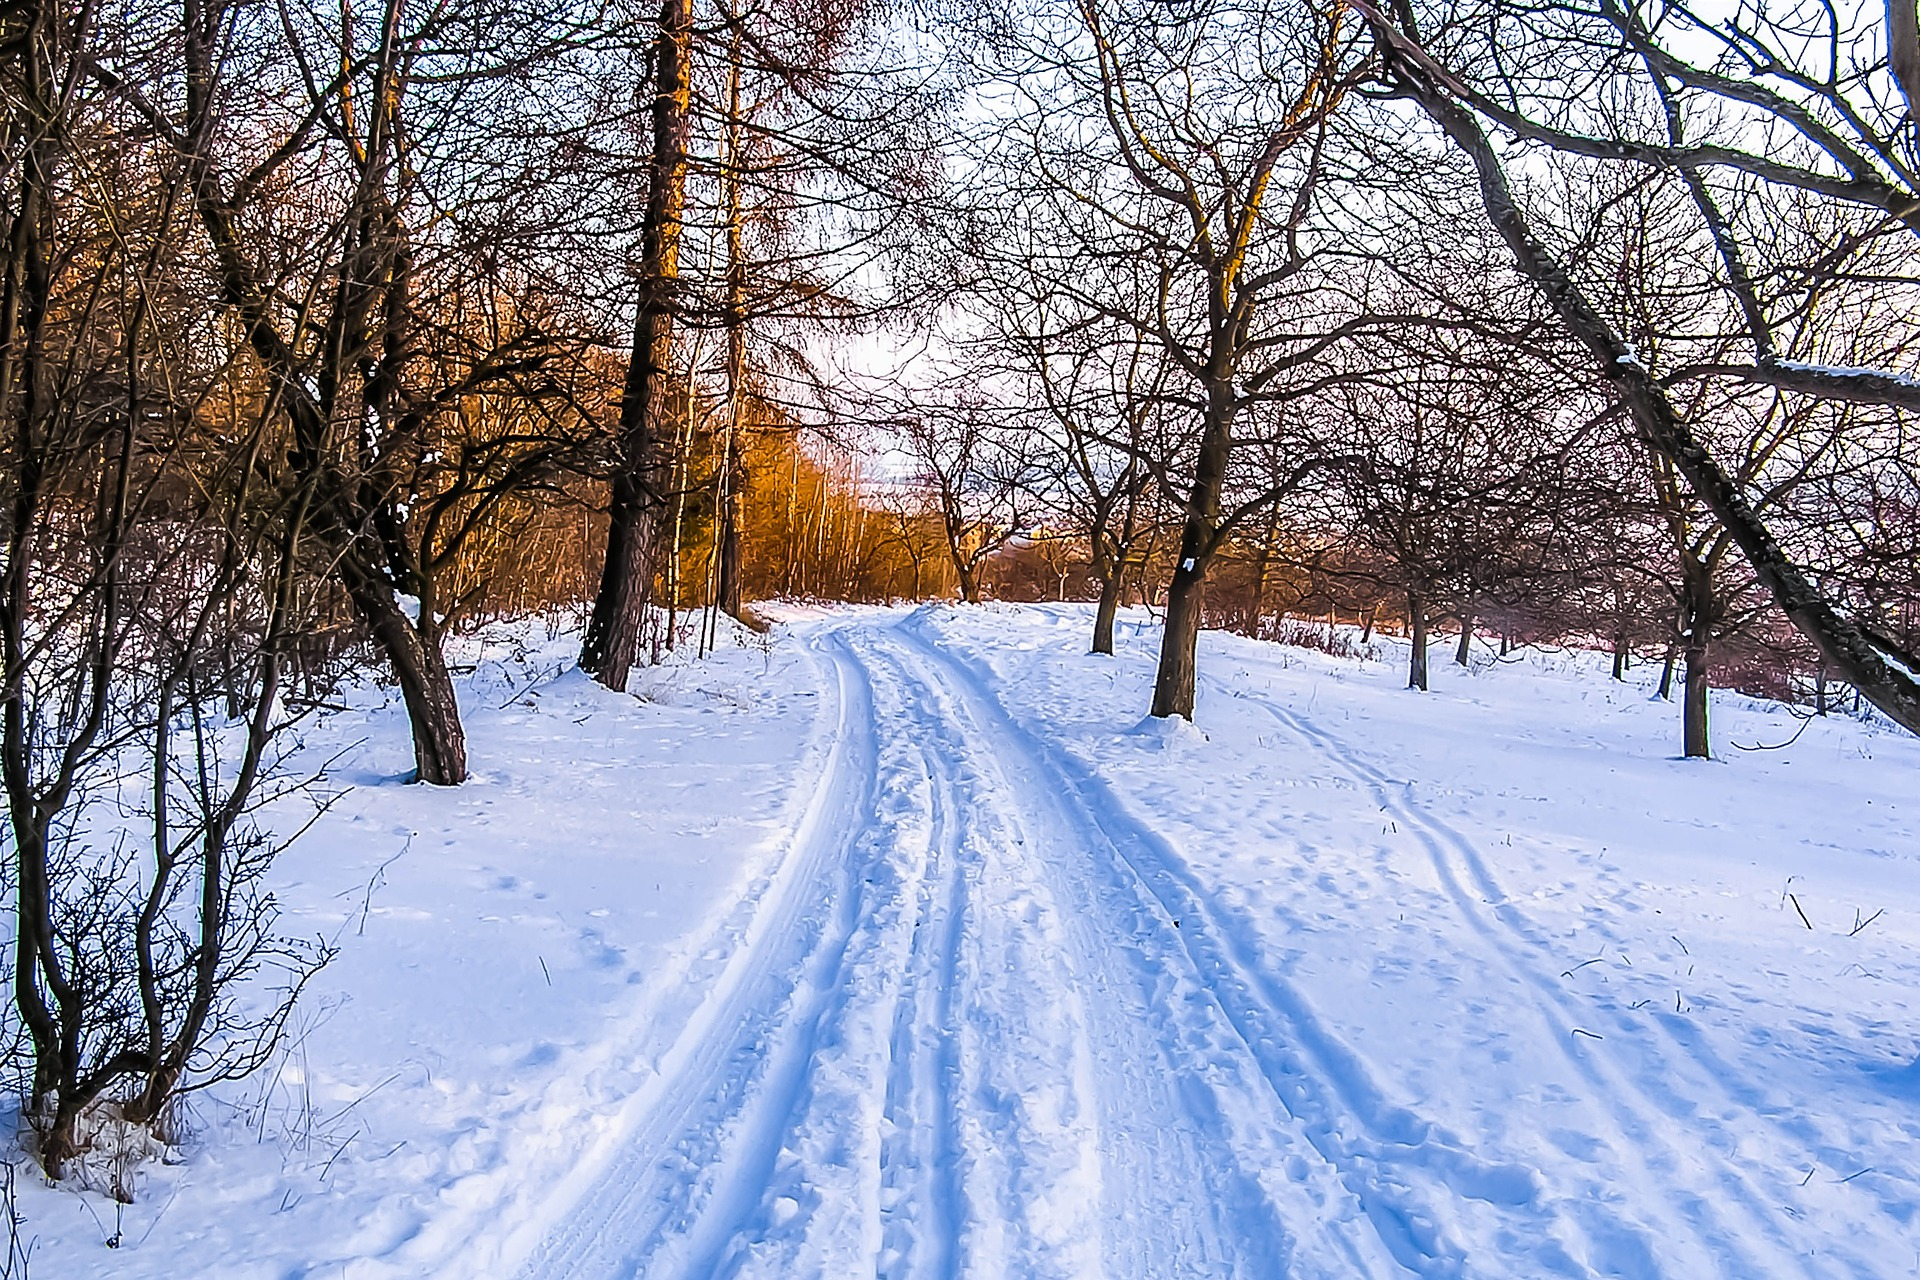 snowy road as an example of what you should avoid when trying to sell your home in the winter.